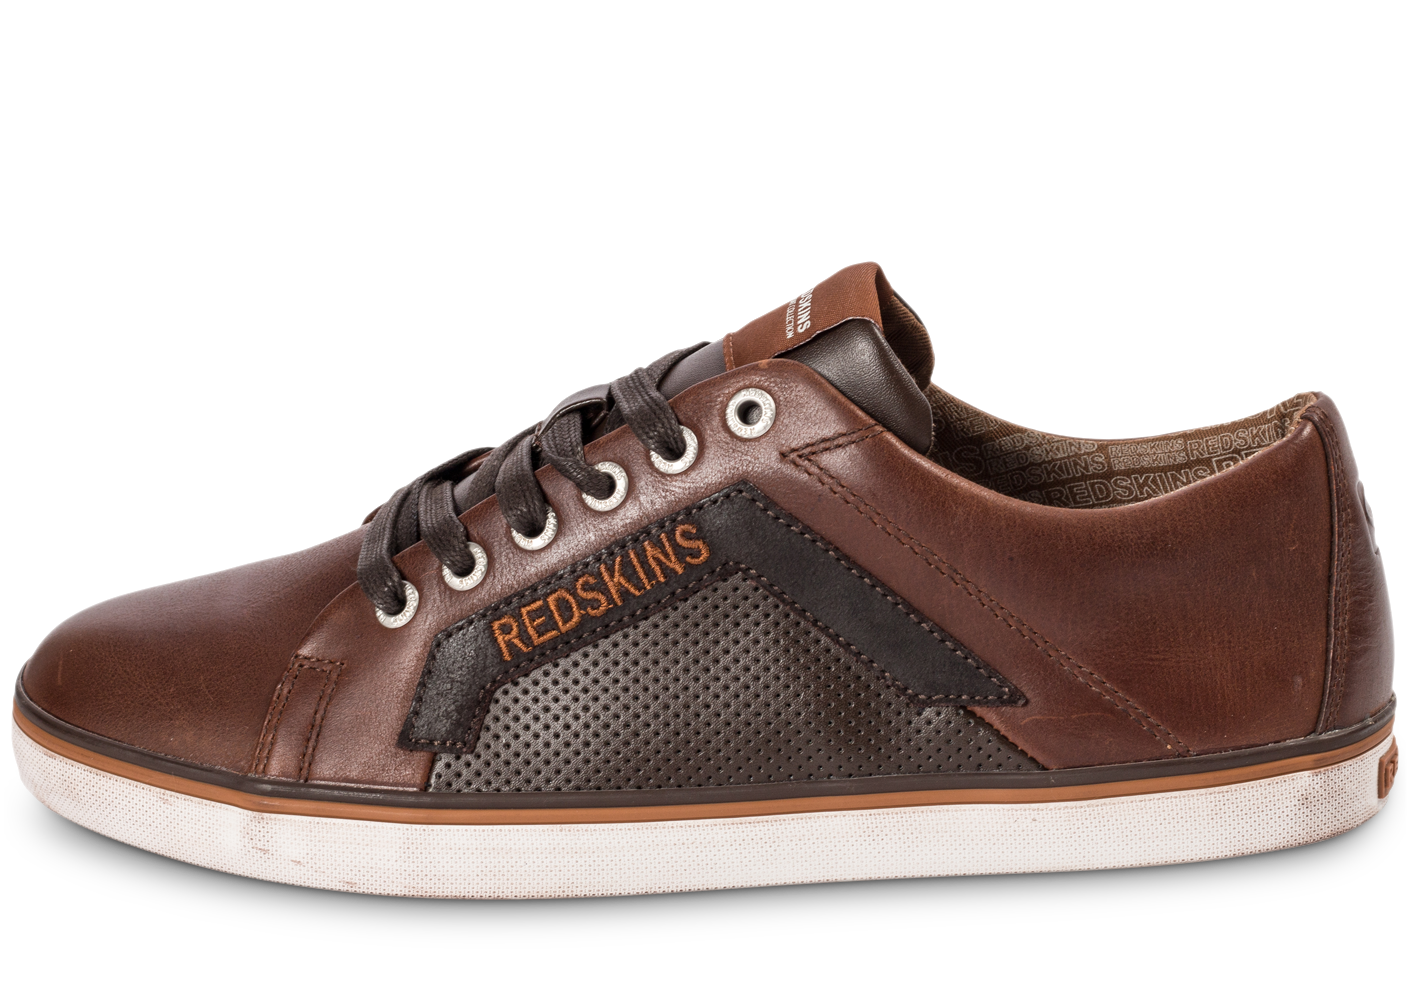 Redskins Dupeu Marron Tennis Homme